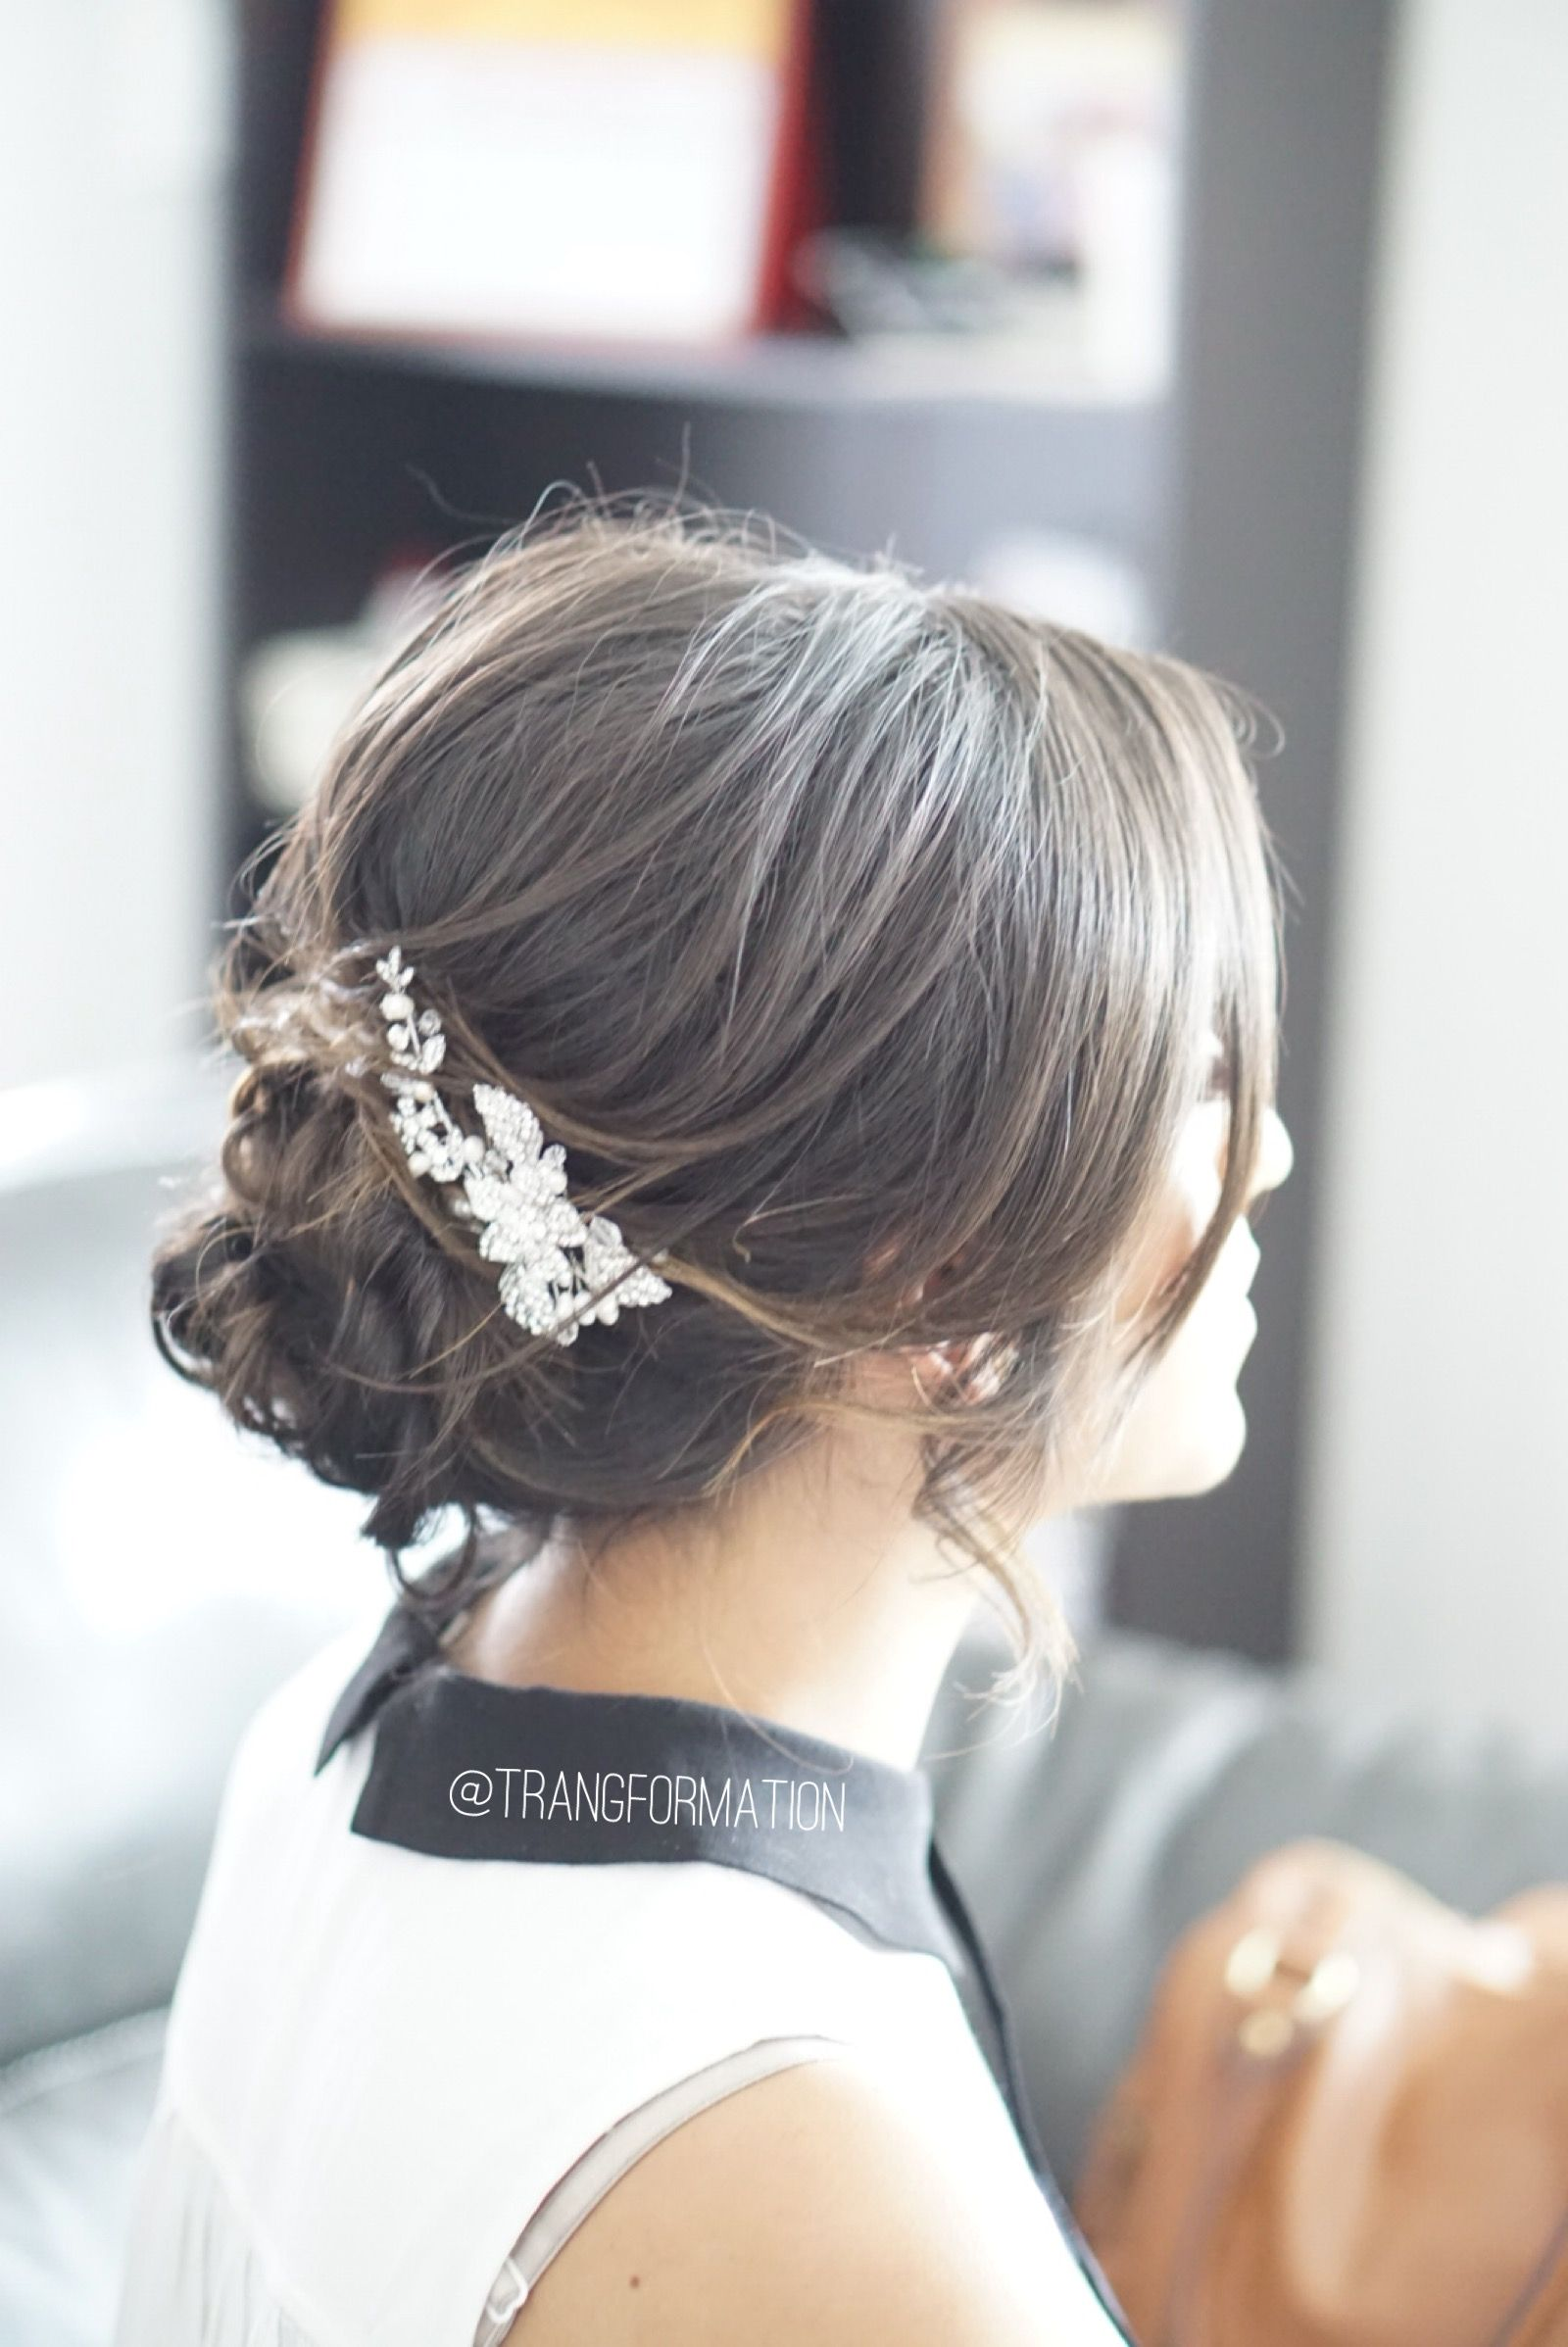 Updo messy updo loose updo wedding hairstyles romantic updo